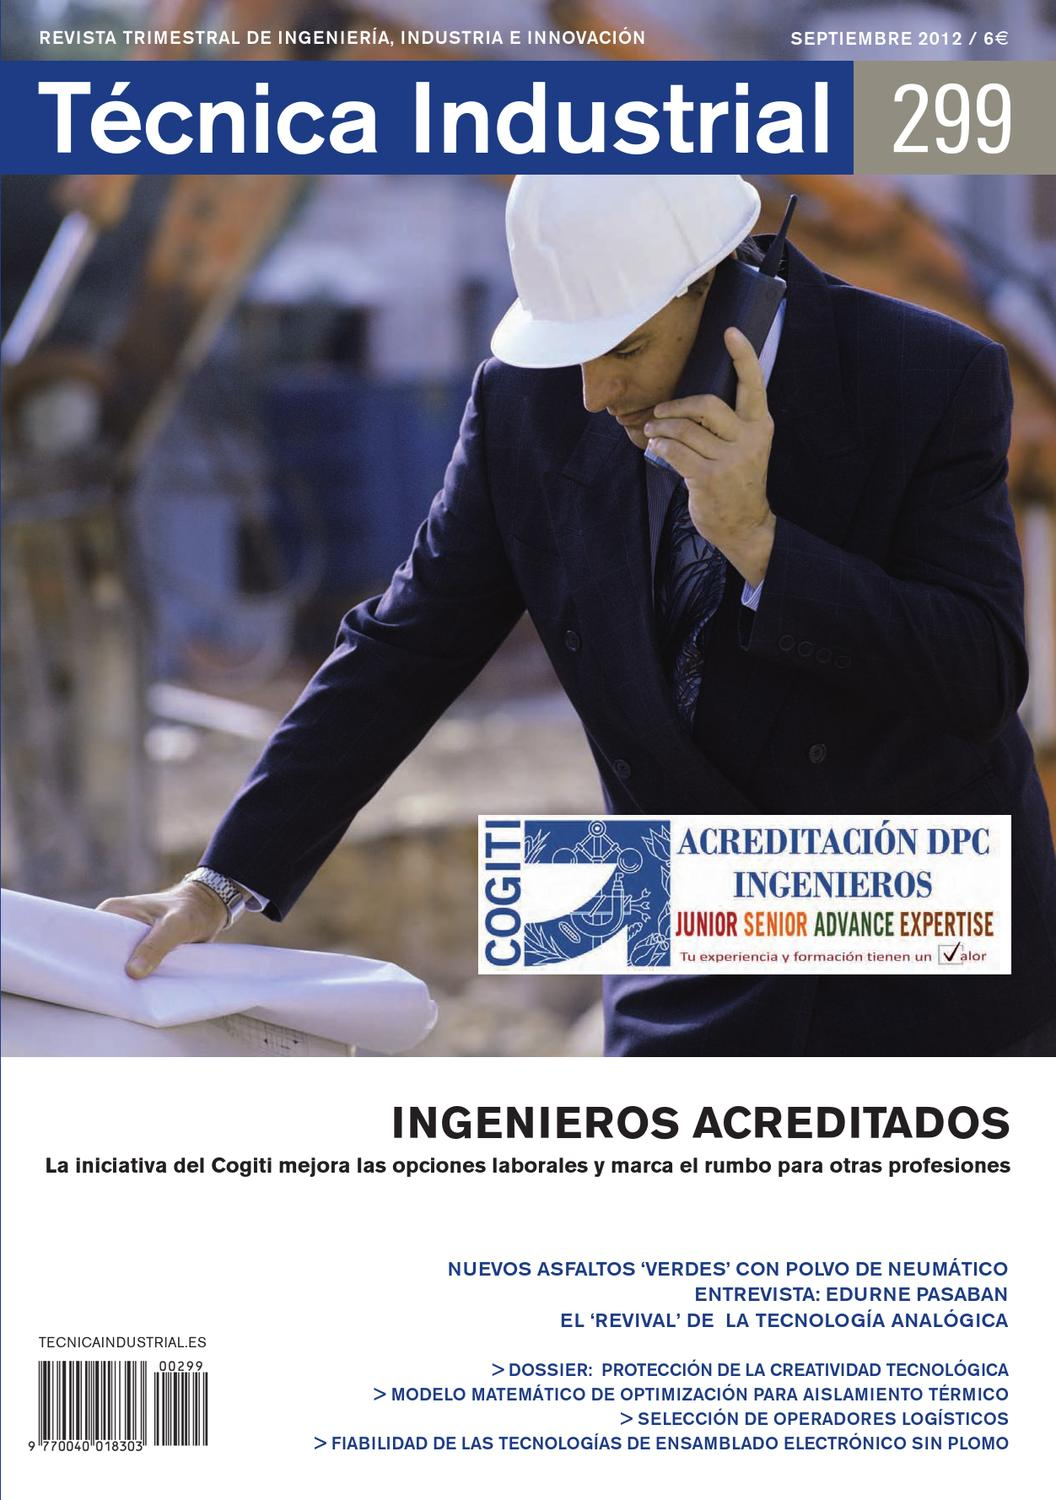 Tecnica Industrial by Vicente Gil Plazas Sanchez - issuu